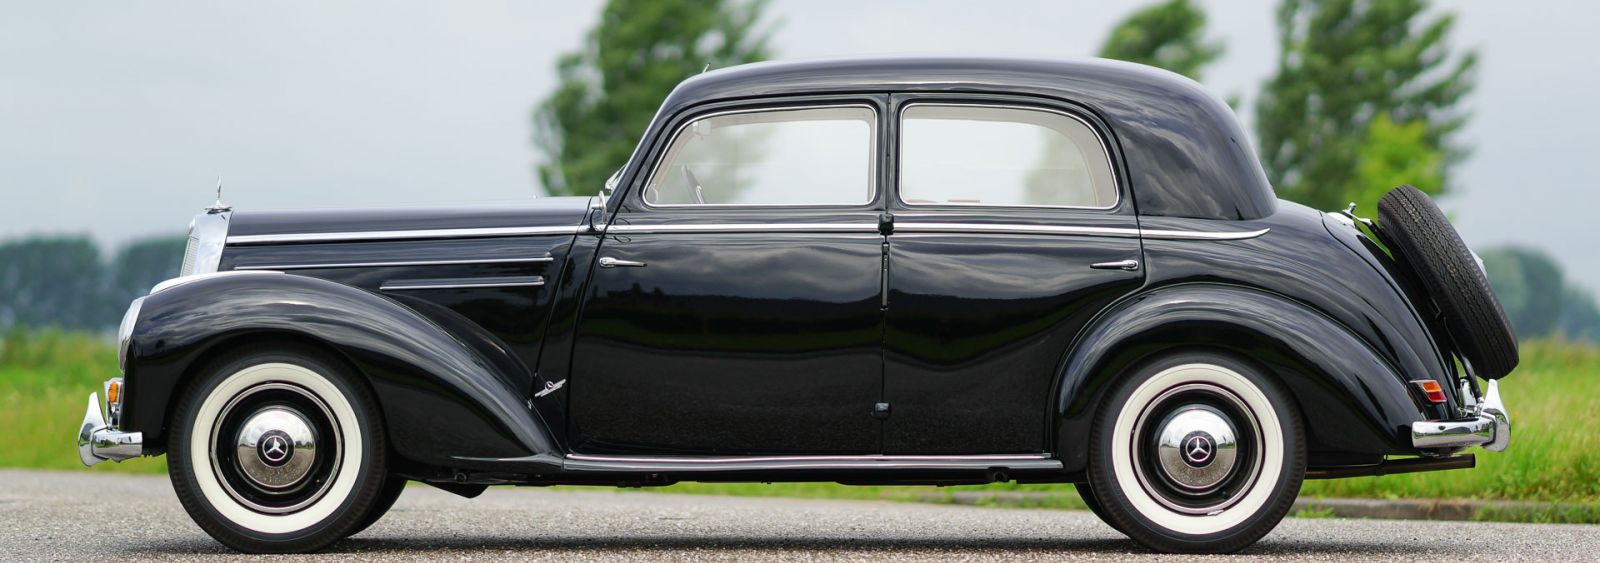 Mercedes benz 220 limousine 1952 welcome to classicargarage for Mercedes benz home page